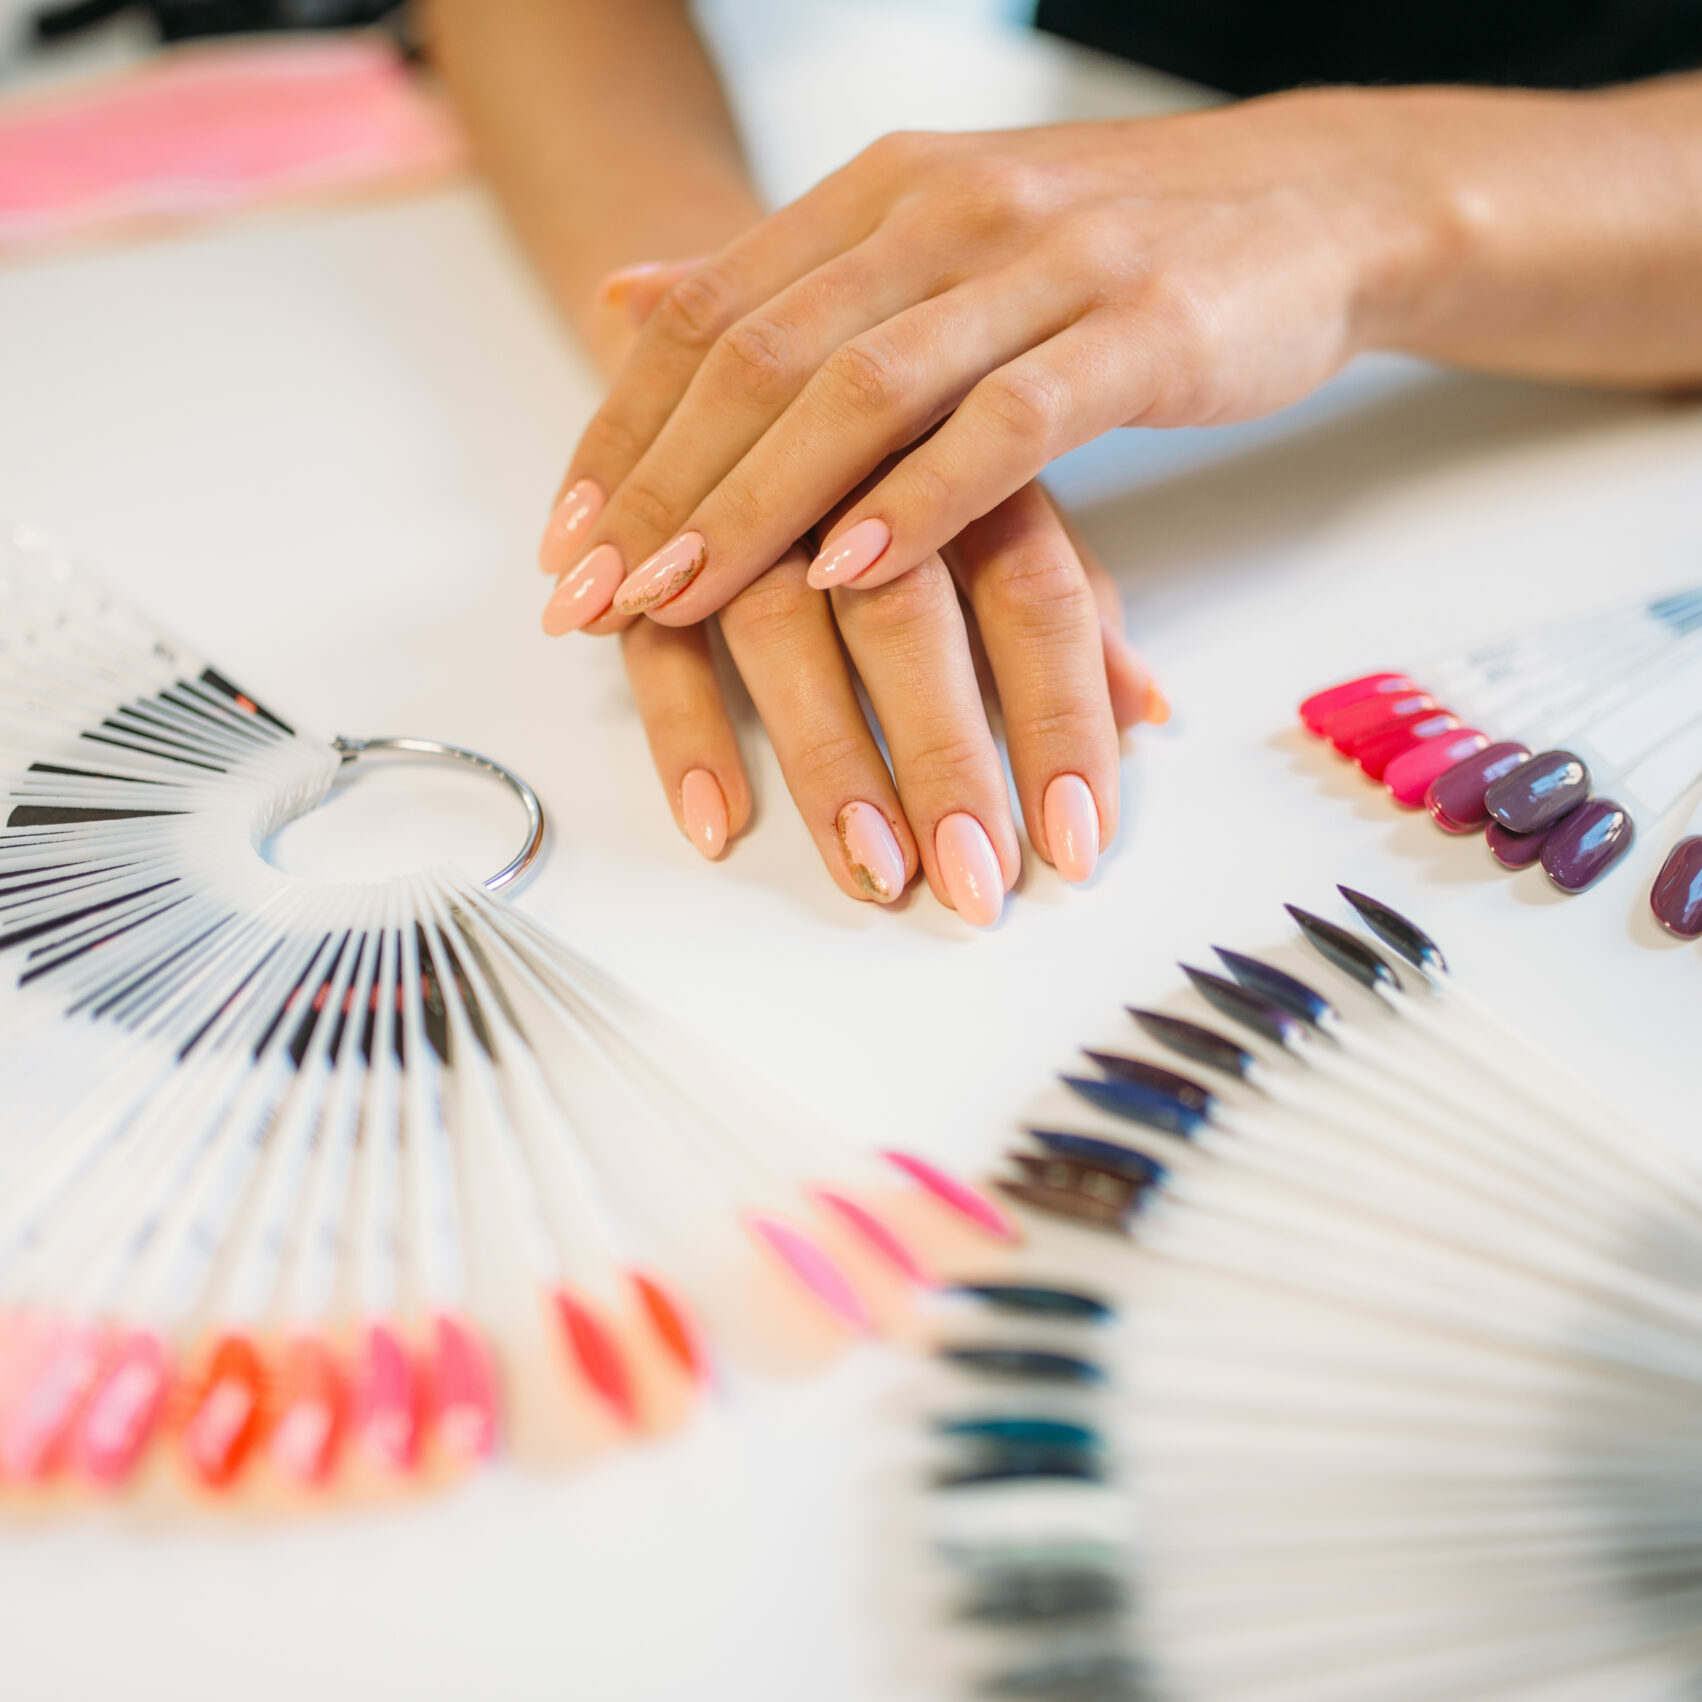 Benefits of receiving the LILA NAILS education program